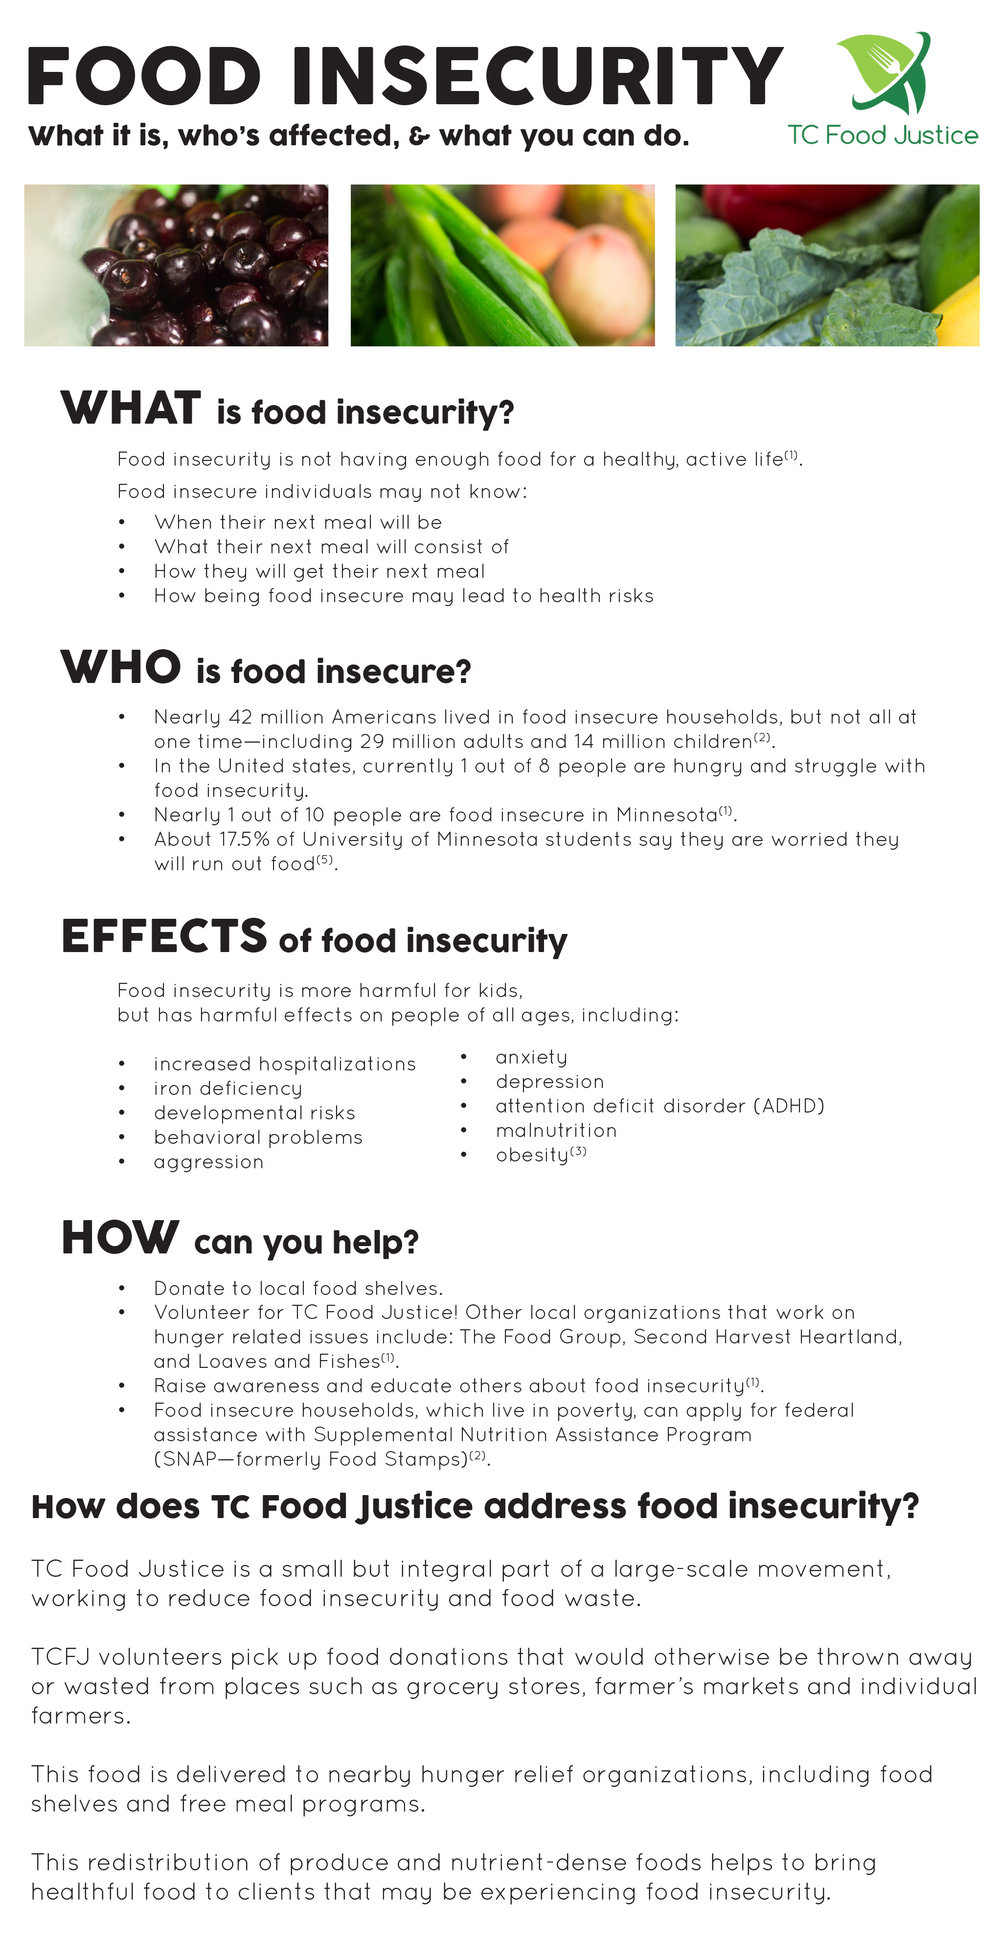 FoodInsecurity_FactSheet_for_web.jpg